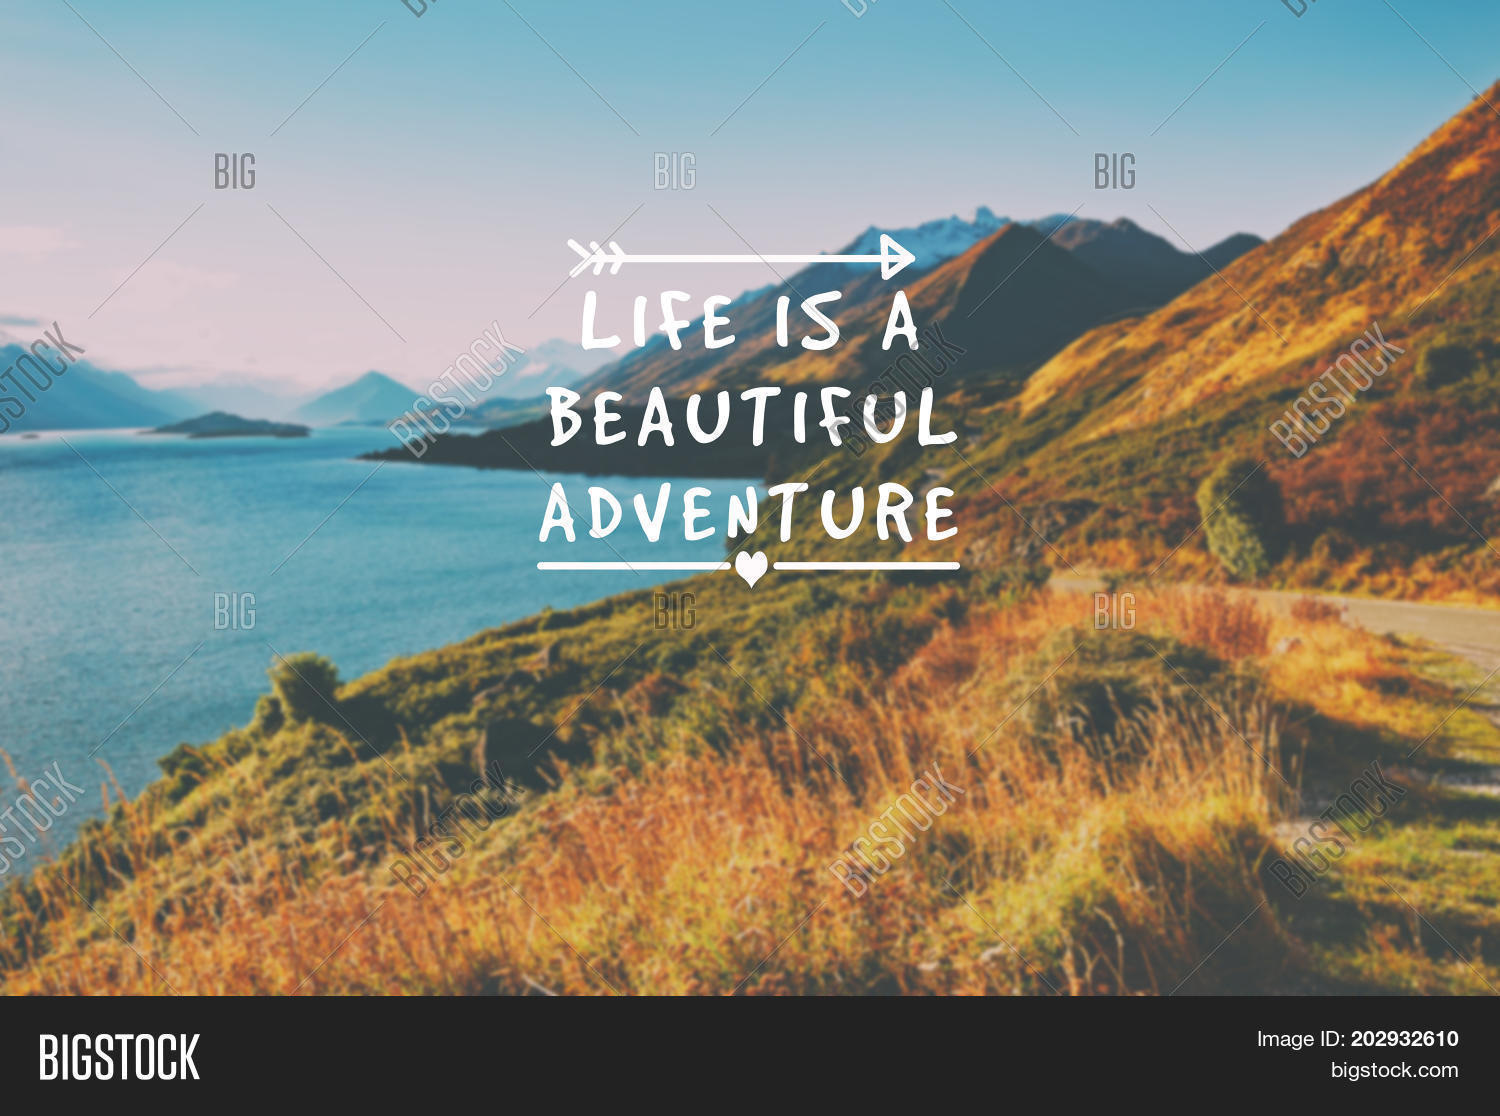 Travel Inspirational Image Photo Free Trial Bigstock